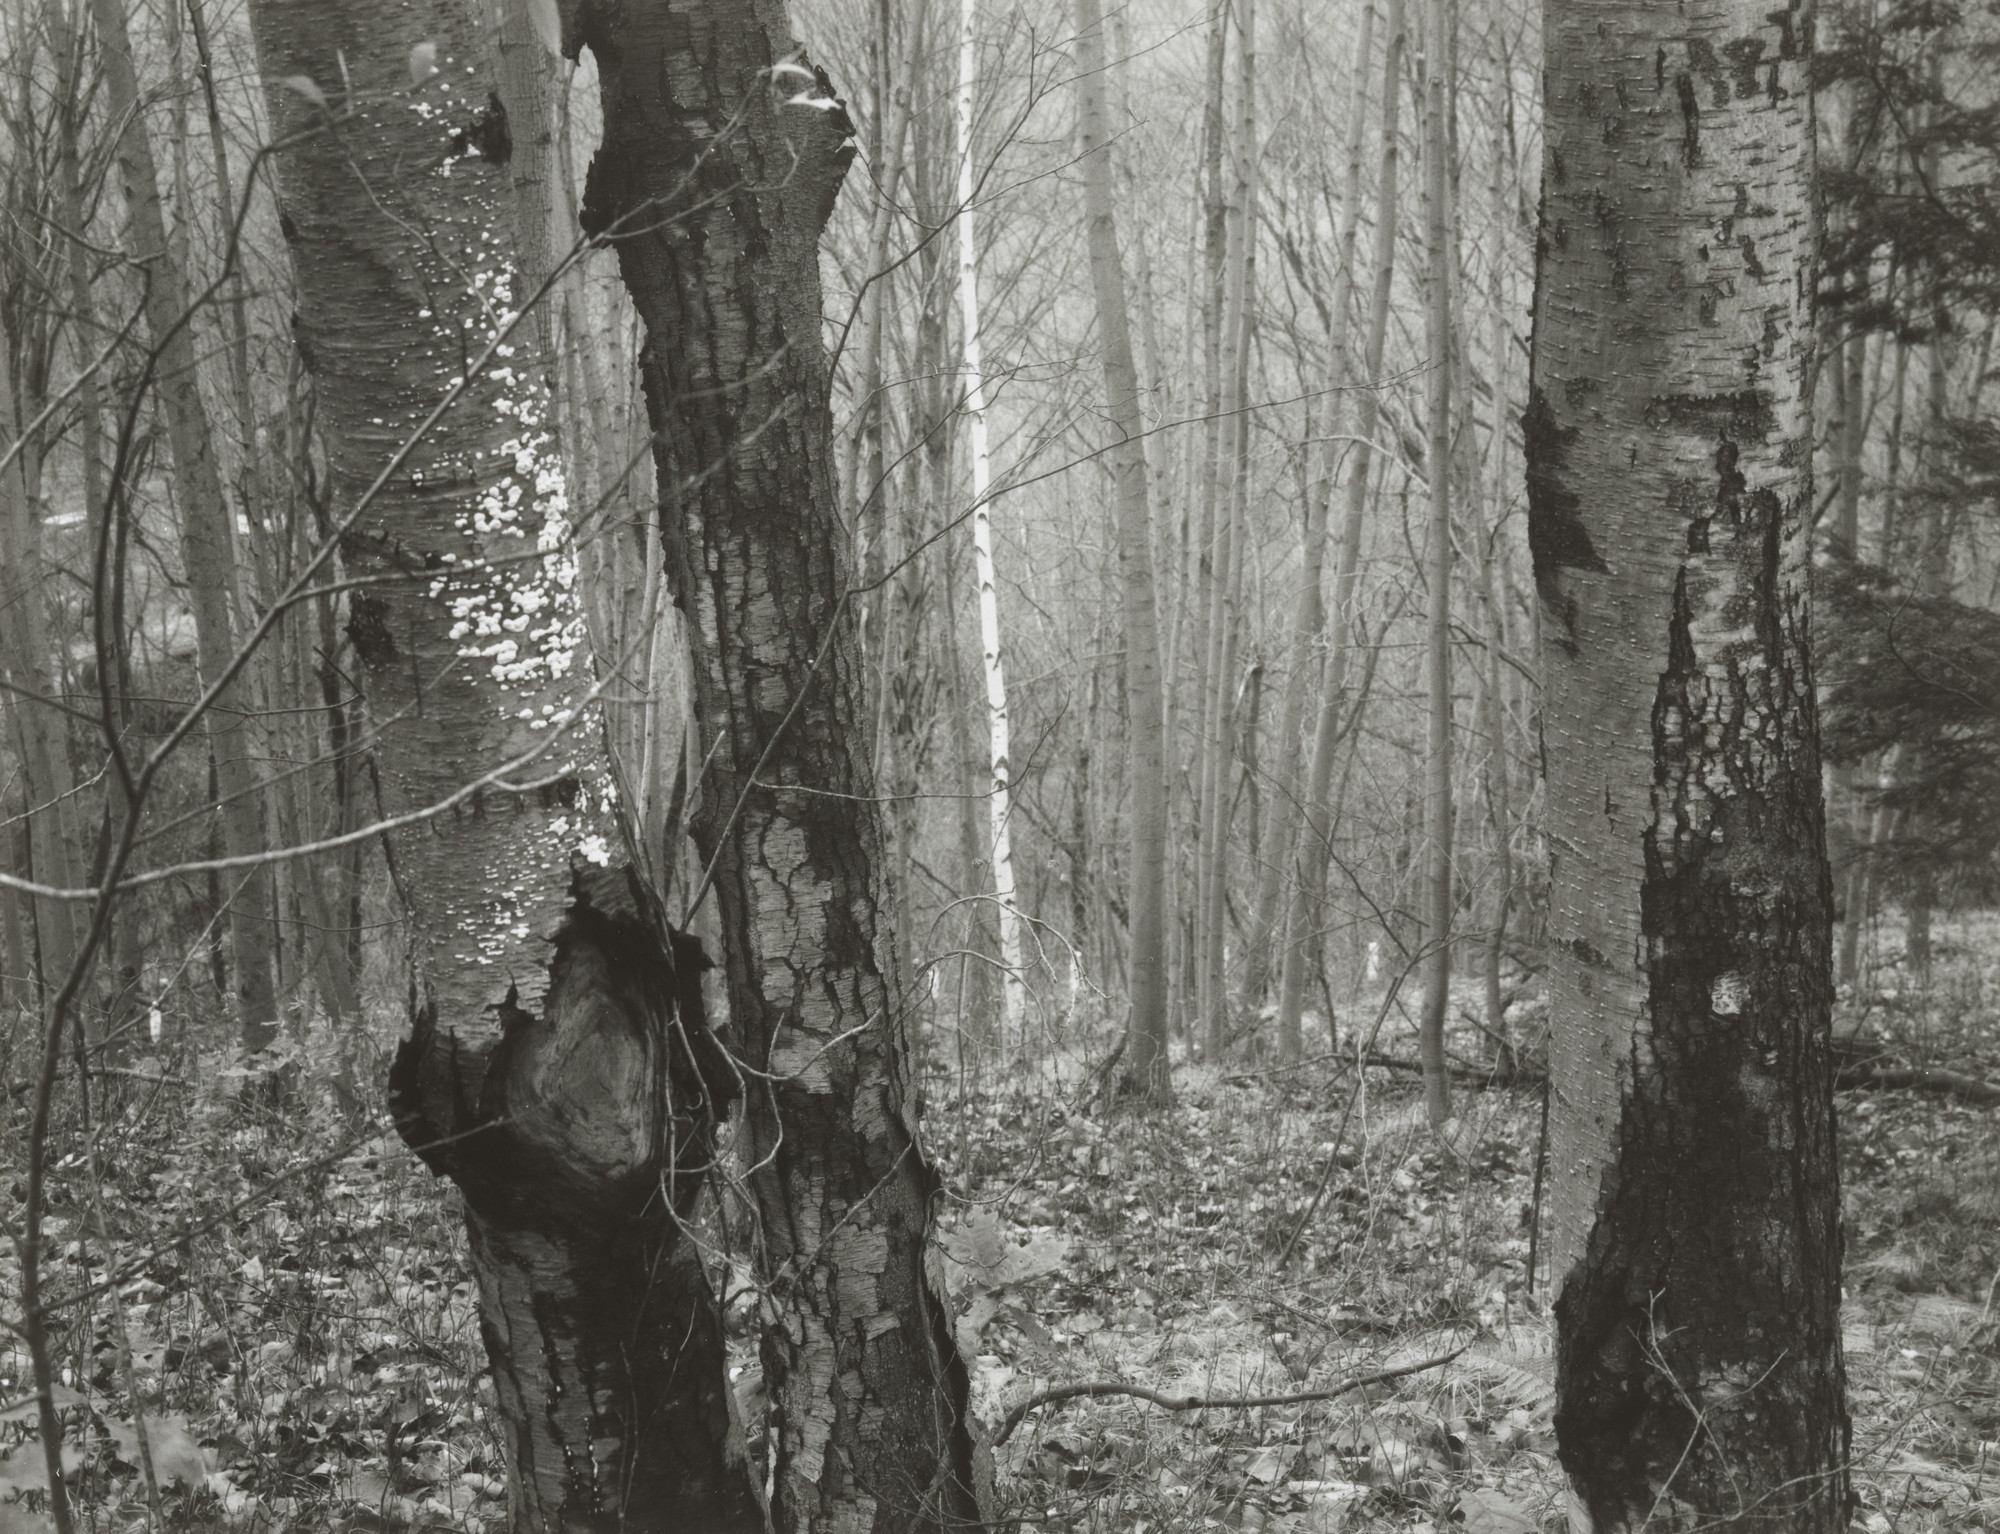 Paul Caponigro. Brewster Woods, New York. 1963